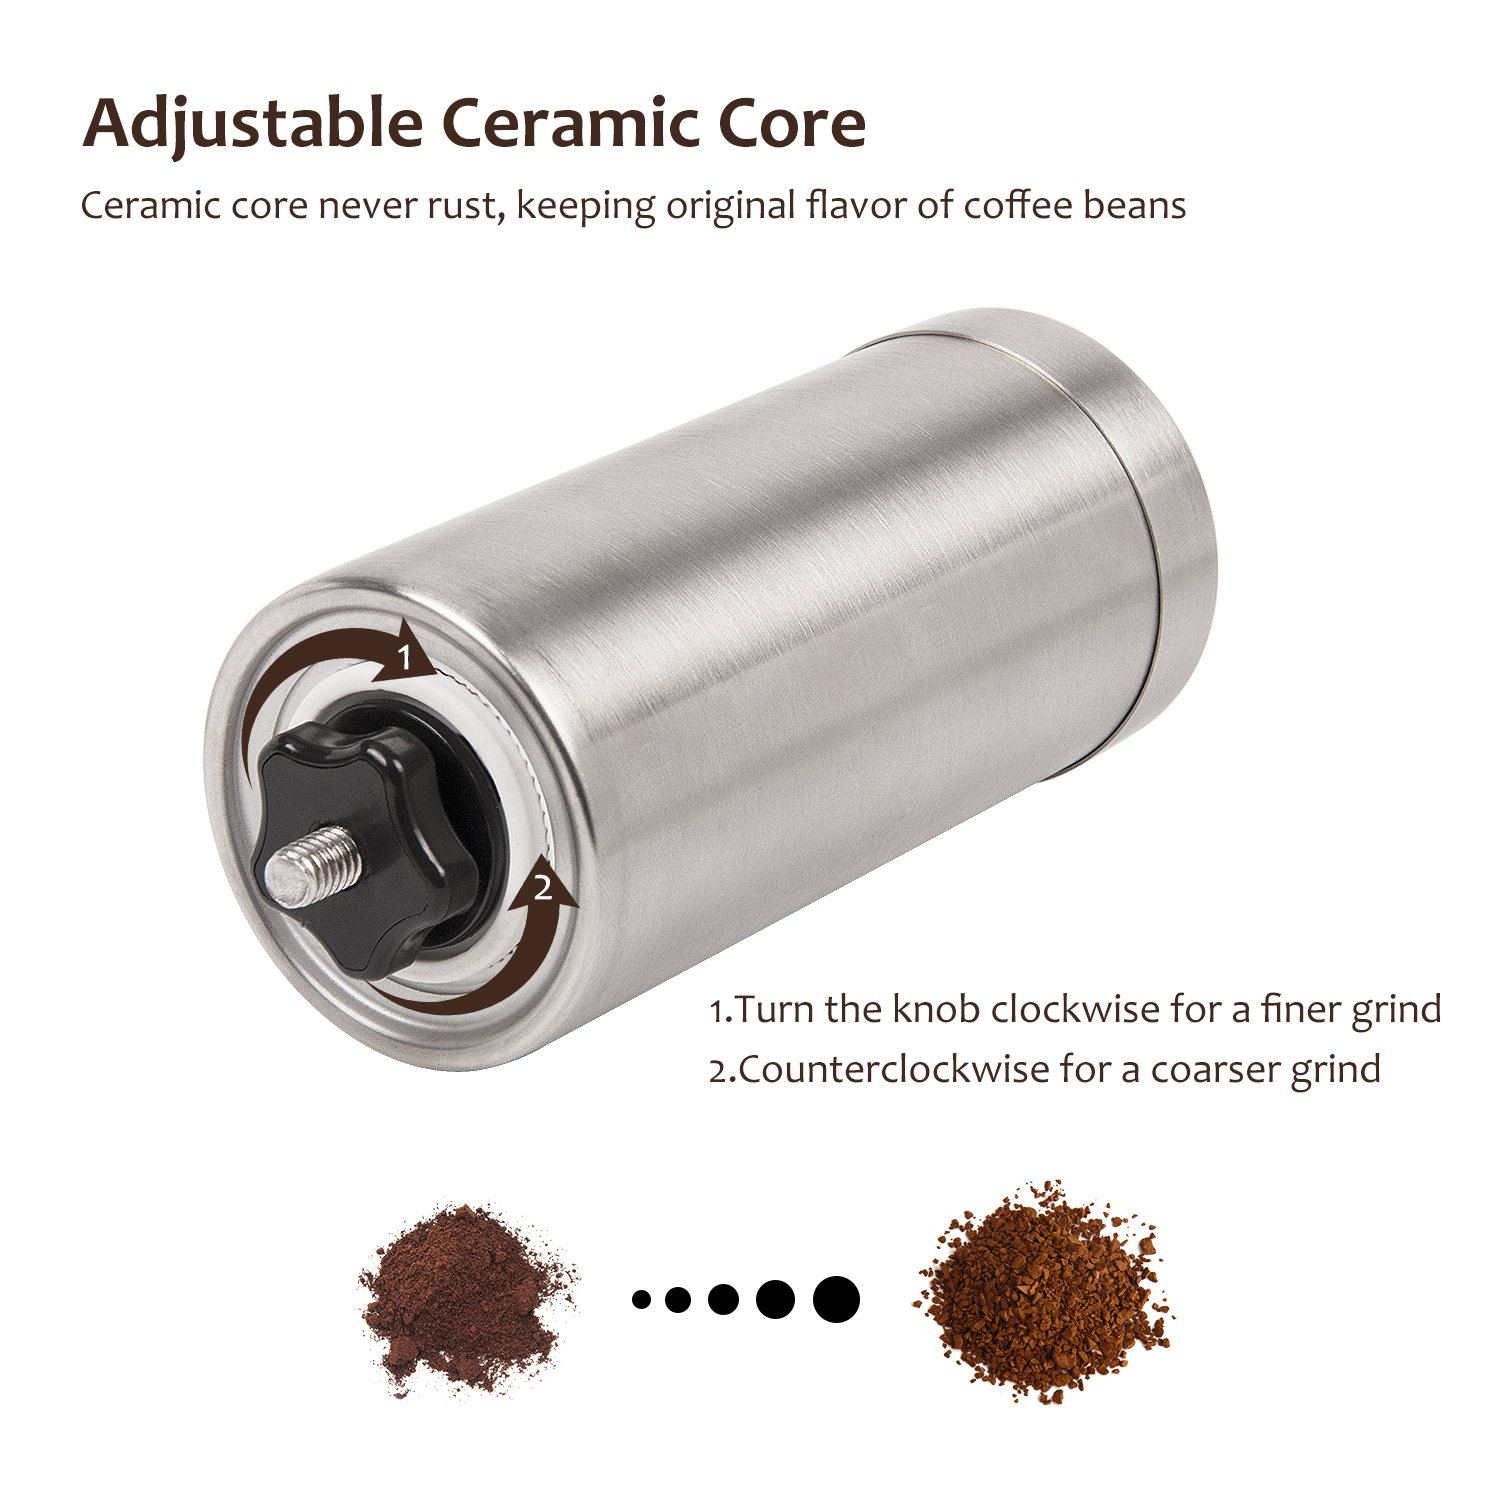 Manual Coffee Grinder Set, Adjustable Ceramic Core, Premium Stainless Steel, Portable Best Burr Mill with Free Handheld Milk Foam Maker Wand by Vina, Scoop & Pouch Bag included